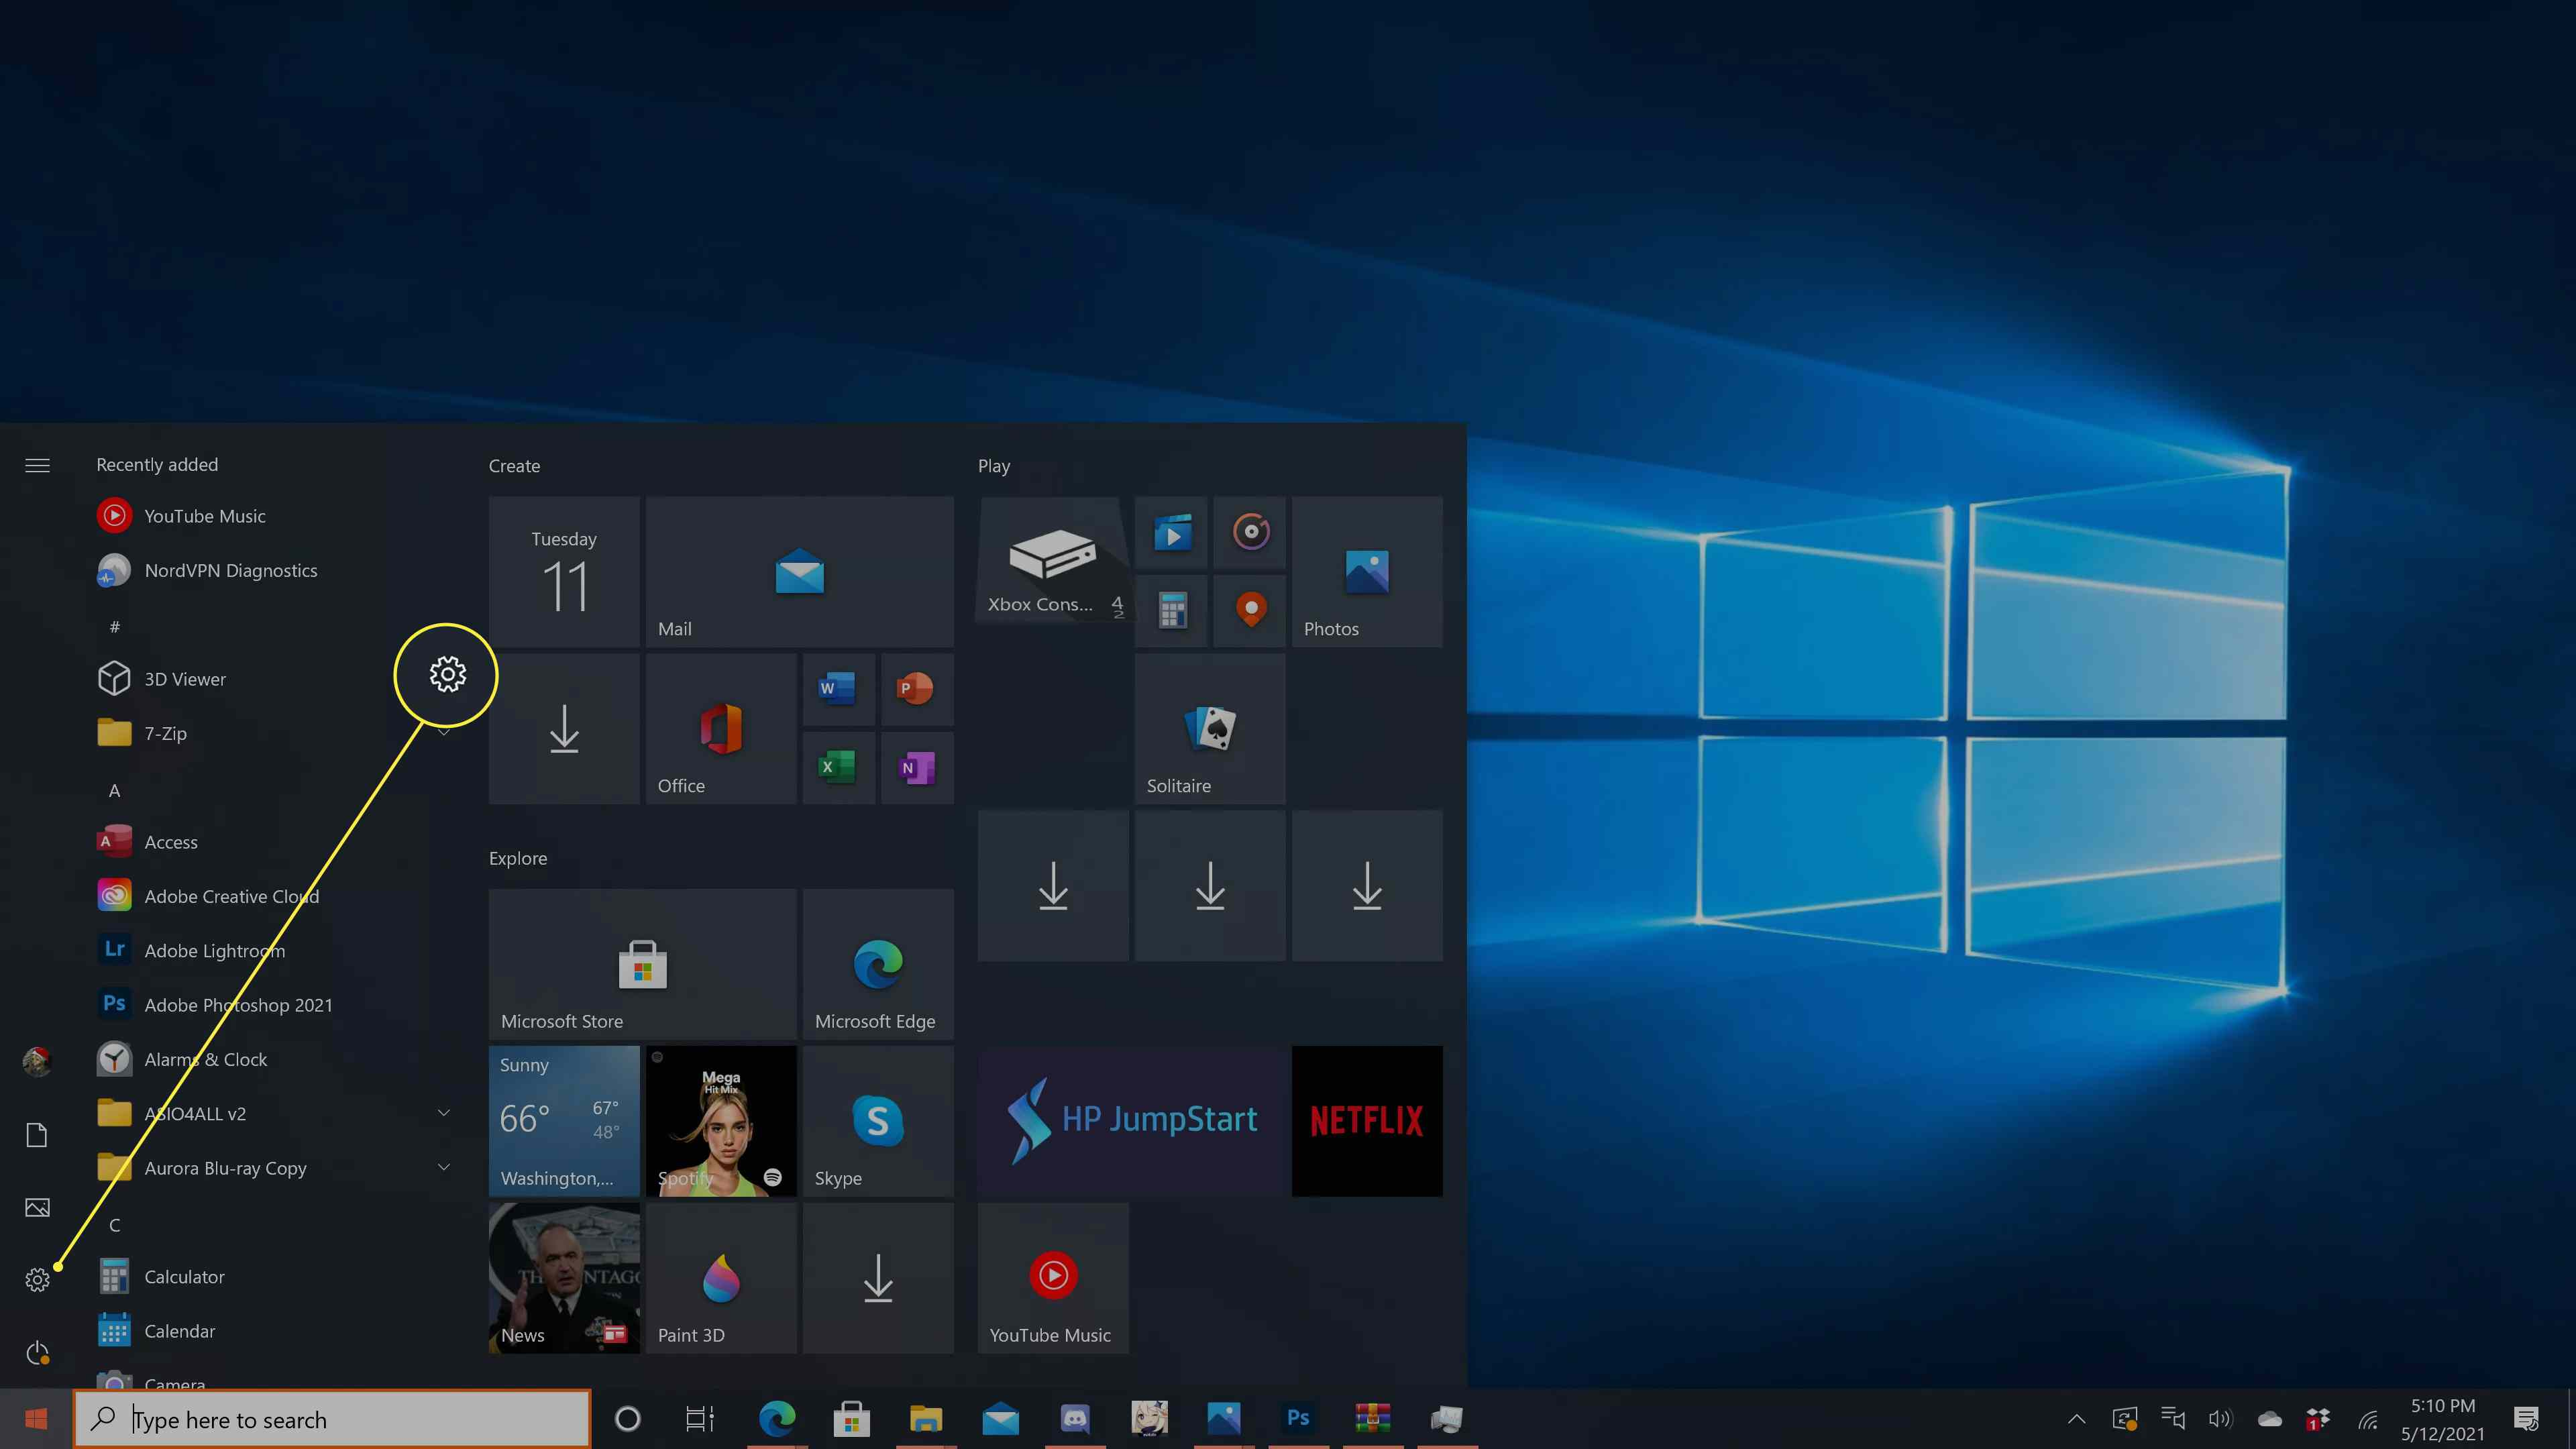 The gear icon highlighted in the Windows 10 start menu.